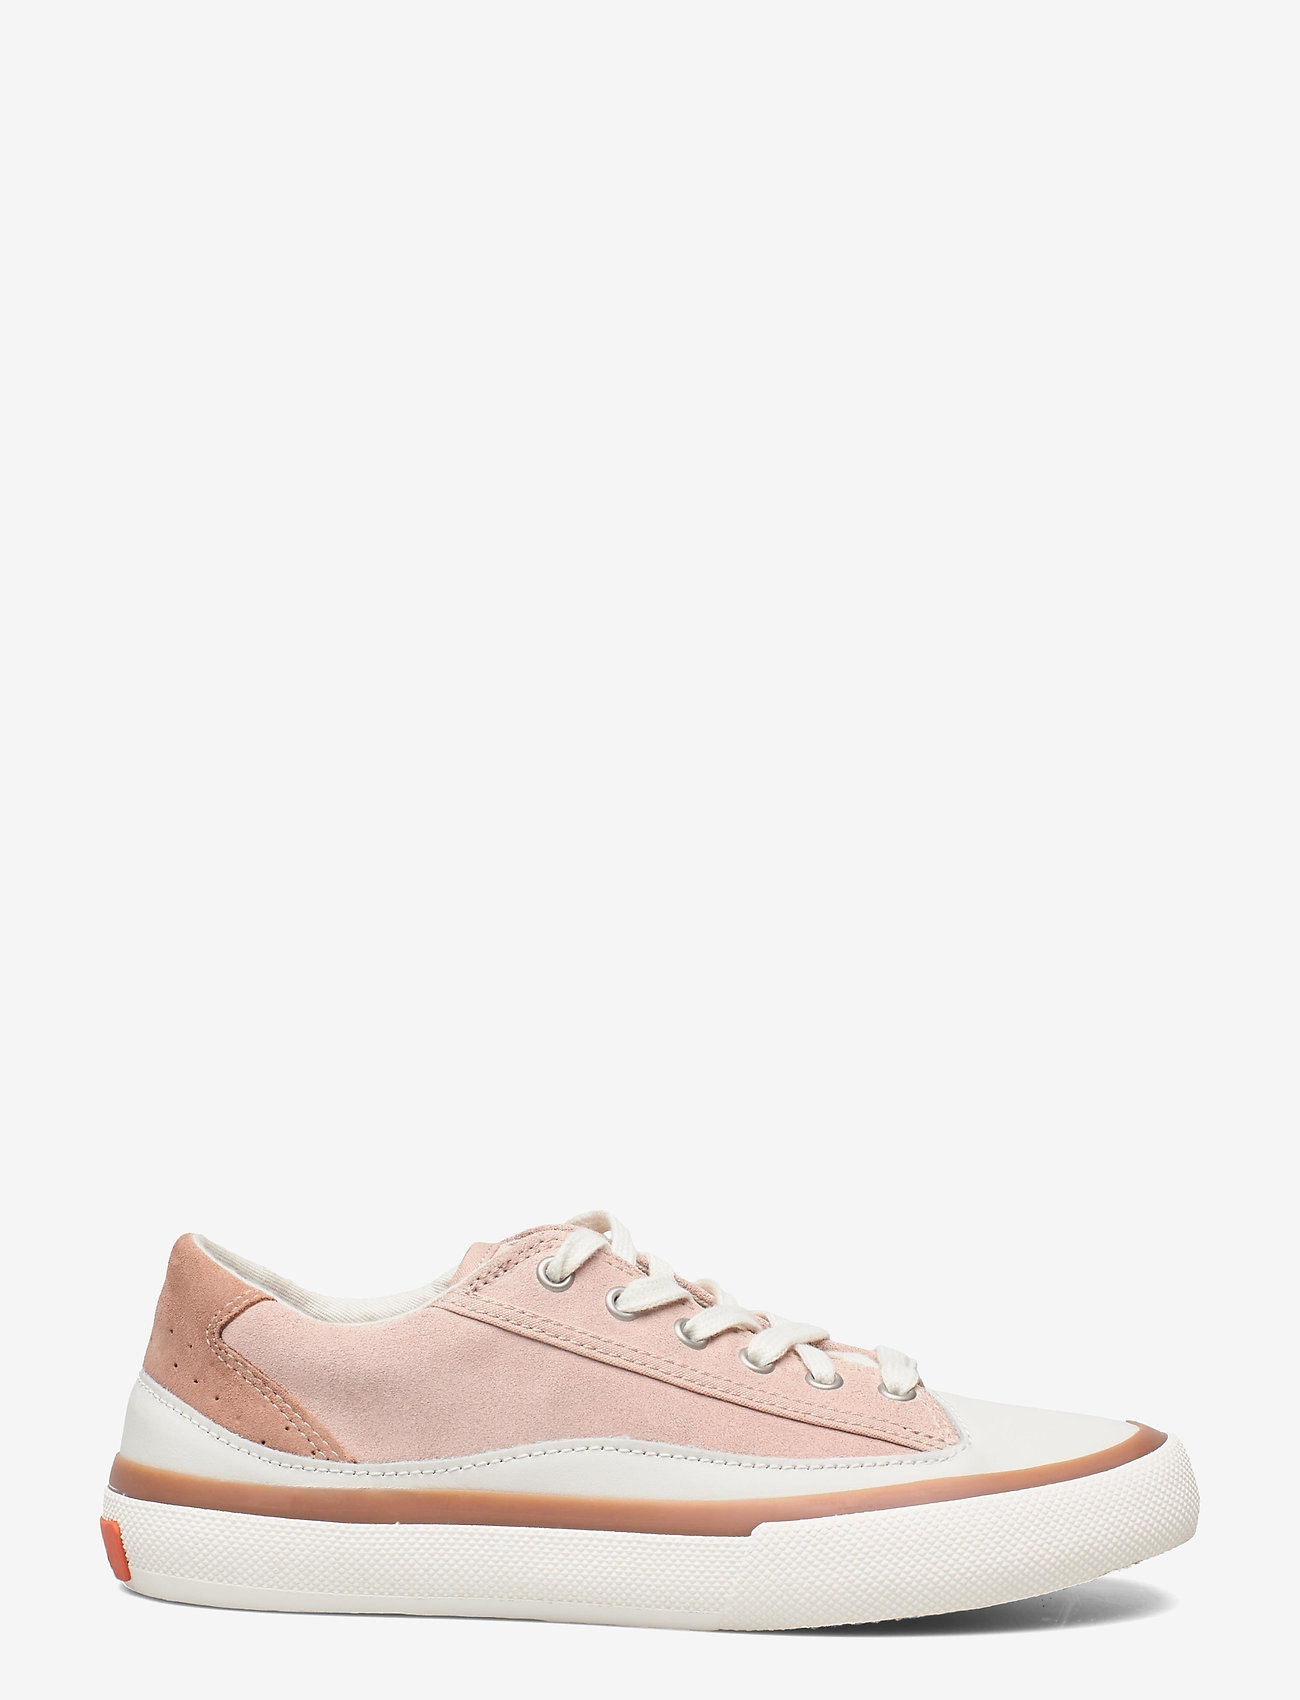 Clarks - Aceley Lace - låga sneakers - light pink - 1